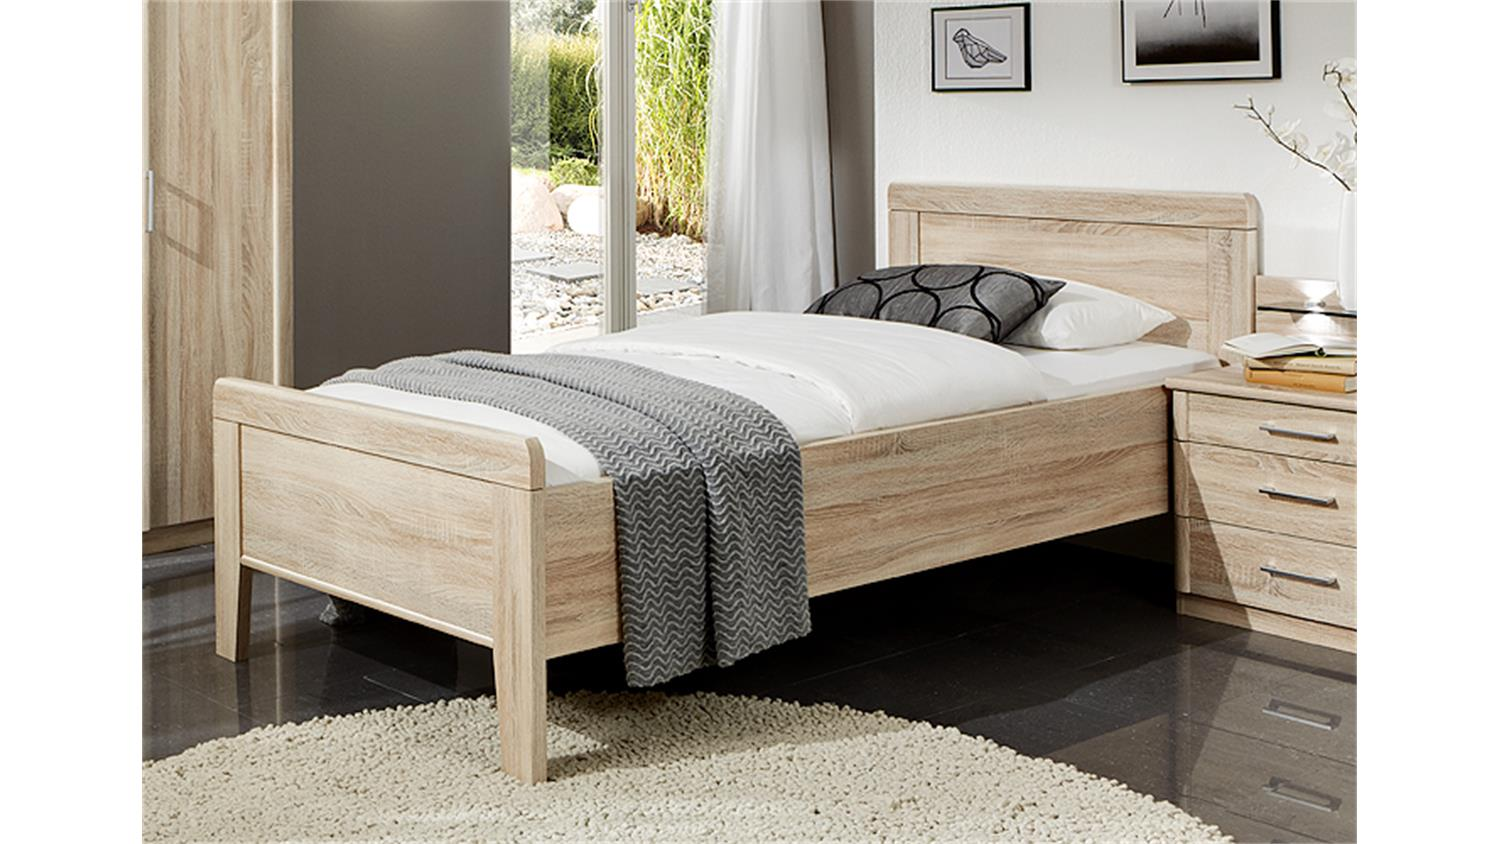 bett meran bettgestell futonbett in eiche s gerau 90x200. Black Bedroom Furniture Sets. Home Design Ideas